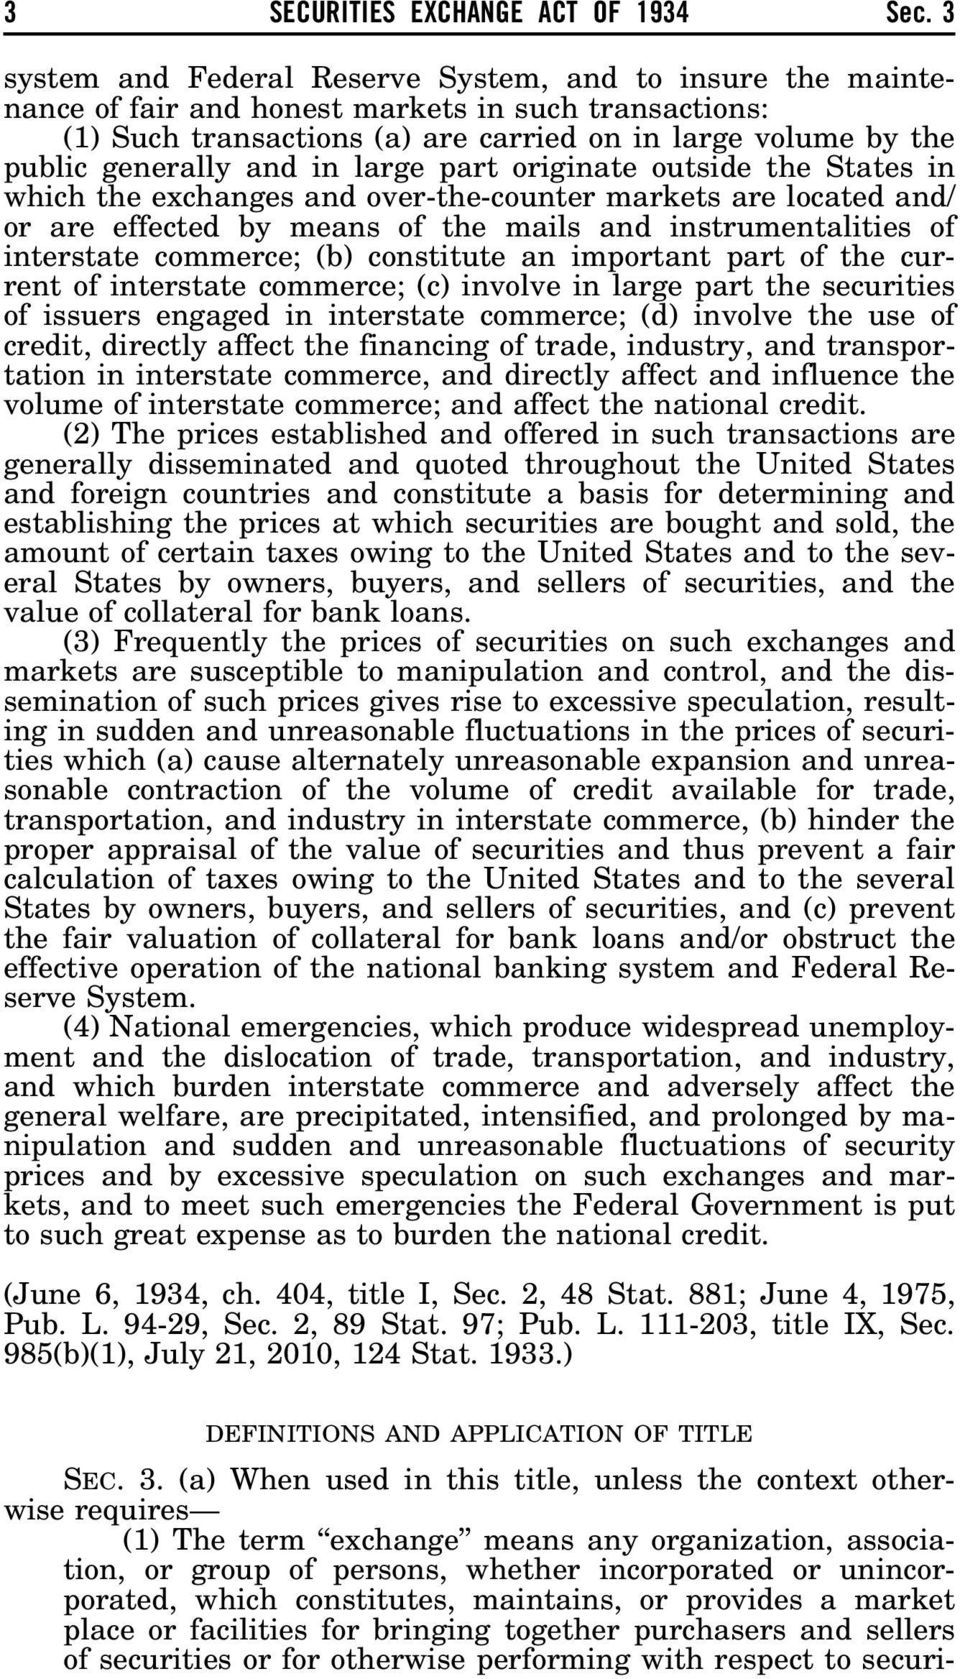 and in large part originate outside the States in which the exchanges and over-the-counter markets are located and/ or are effected by means of the mails and instrumentalities of interstate commerce;